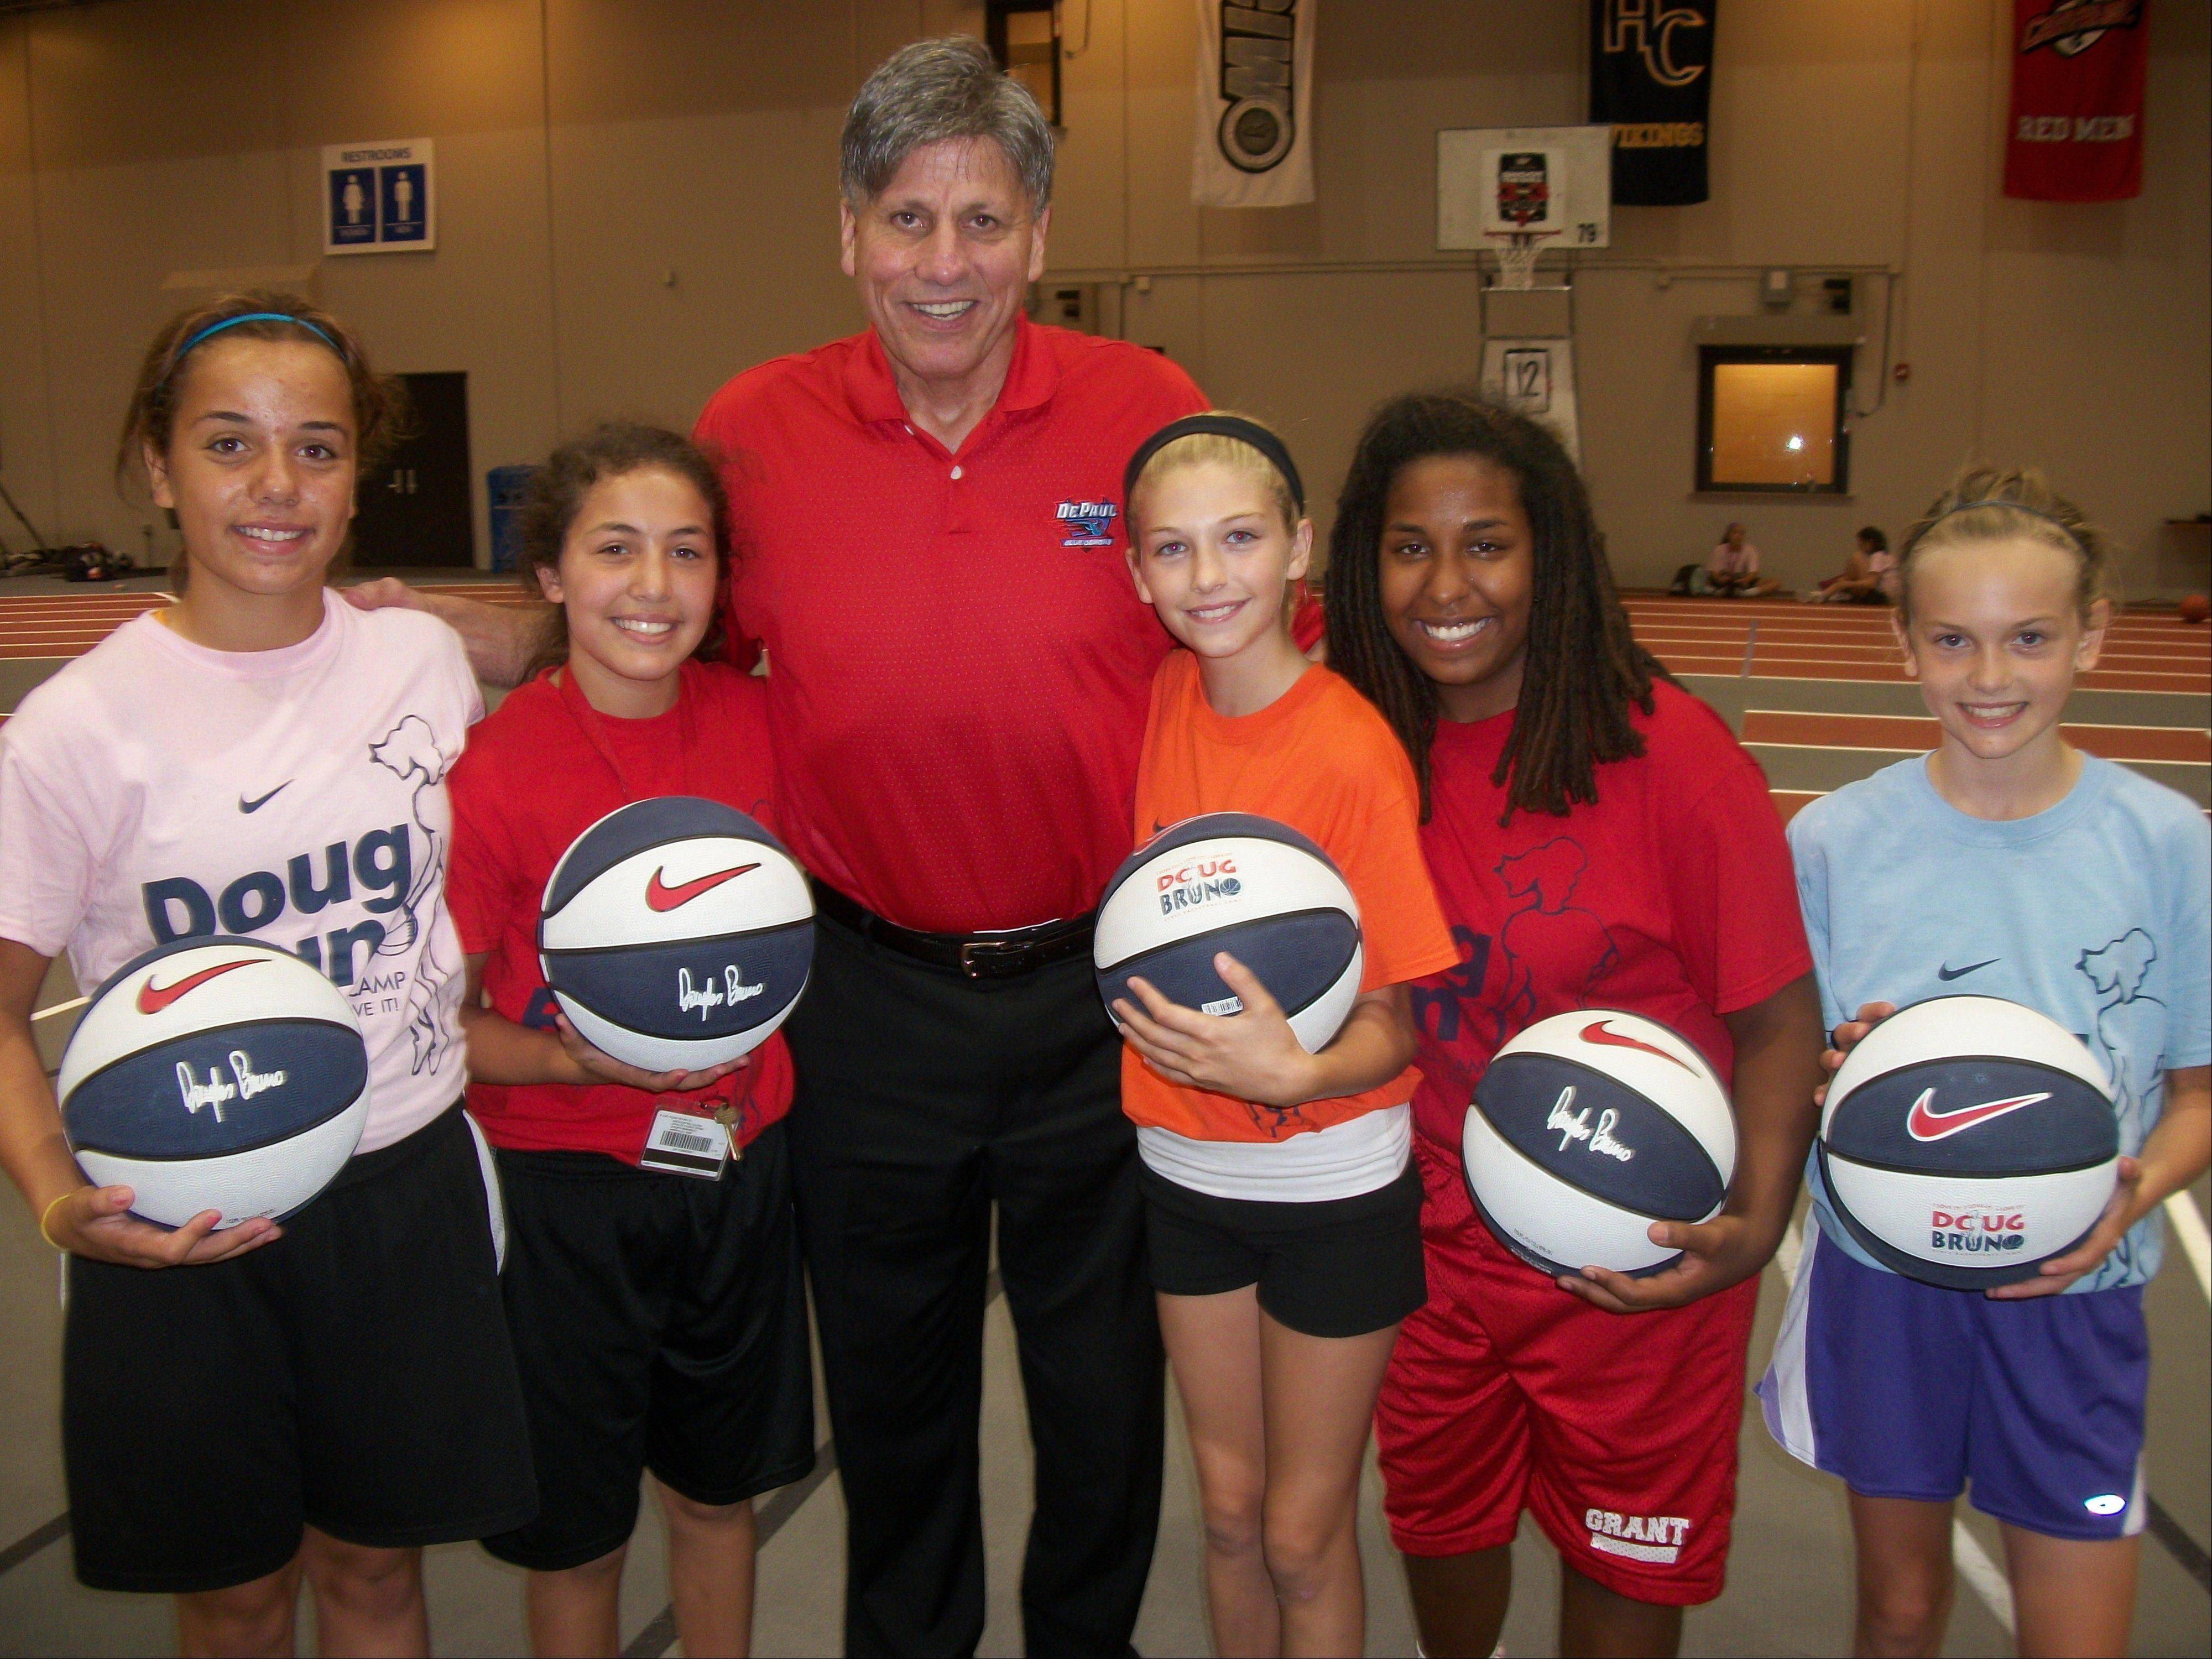 Doug Bruno has been running his girls basketball camps for 37 years. Campers this summer included, from left, Gabby Rogalovich, Mercedes Uribe, Brooke Karpinske, Liz Schram and Kelsey McGraw.